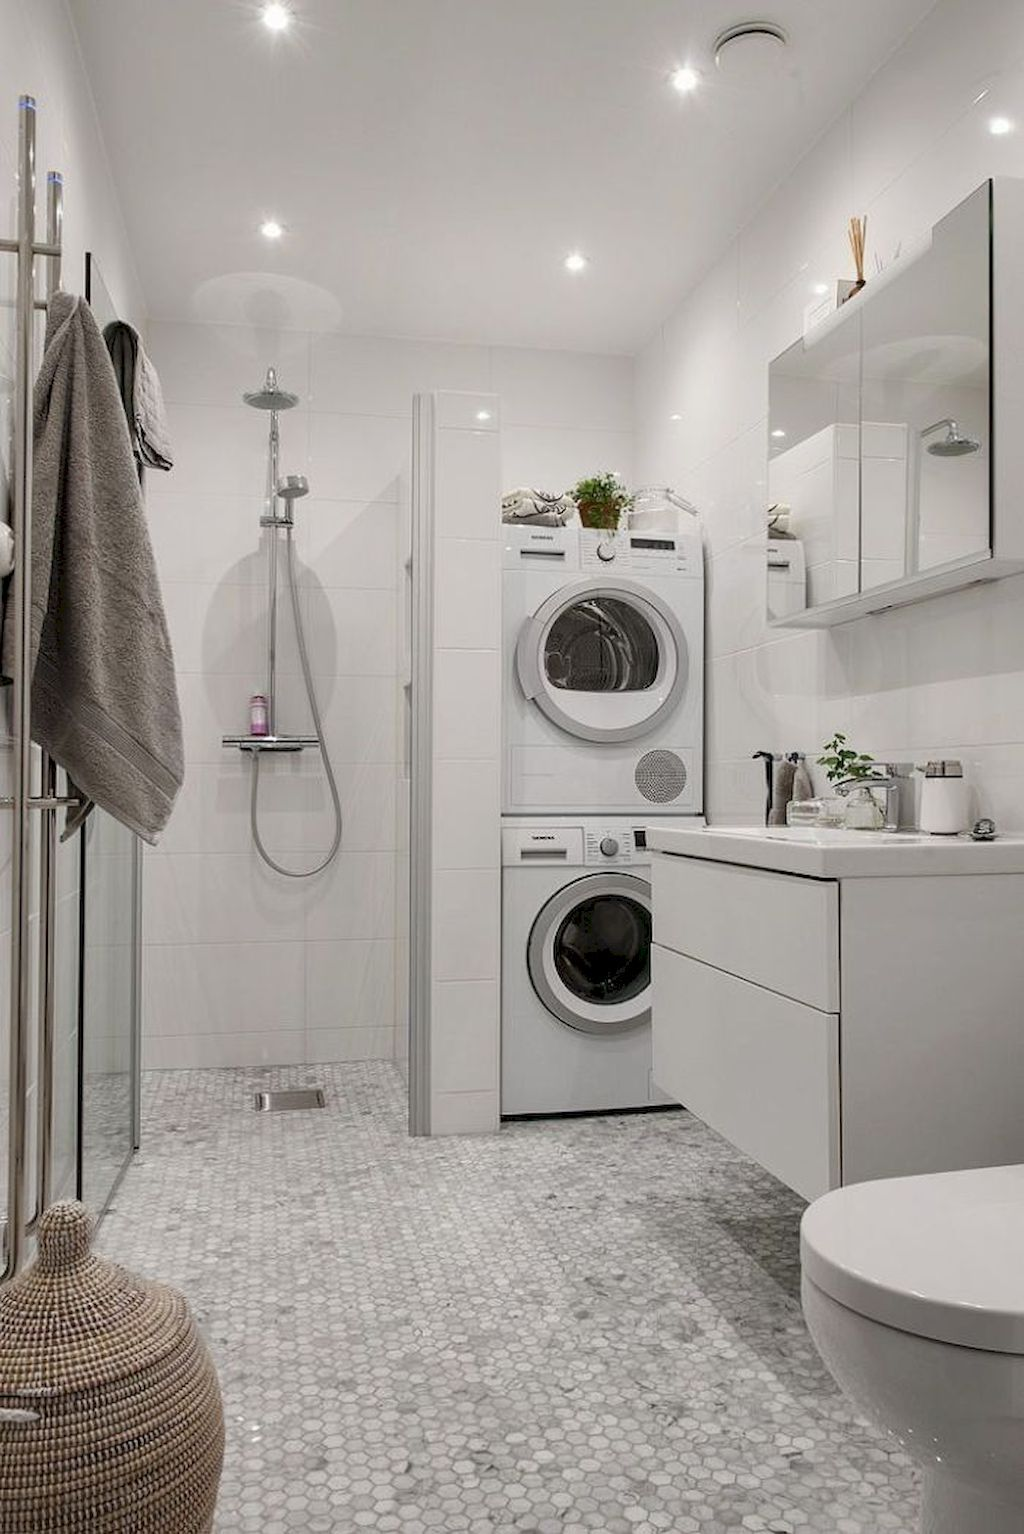 85 Functional Small Laundry Room Design Ideas is part of Laundry in bathroom - Having a cramped, dark, dungeonlike laundry room is no way to do laundry—to have any chance of taking even the smallest amount of joy in this mundane task, you're going to need space, storage, light—and maybe some subway tile and… Continue Reading →